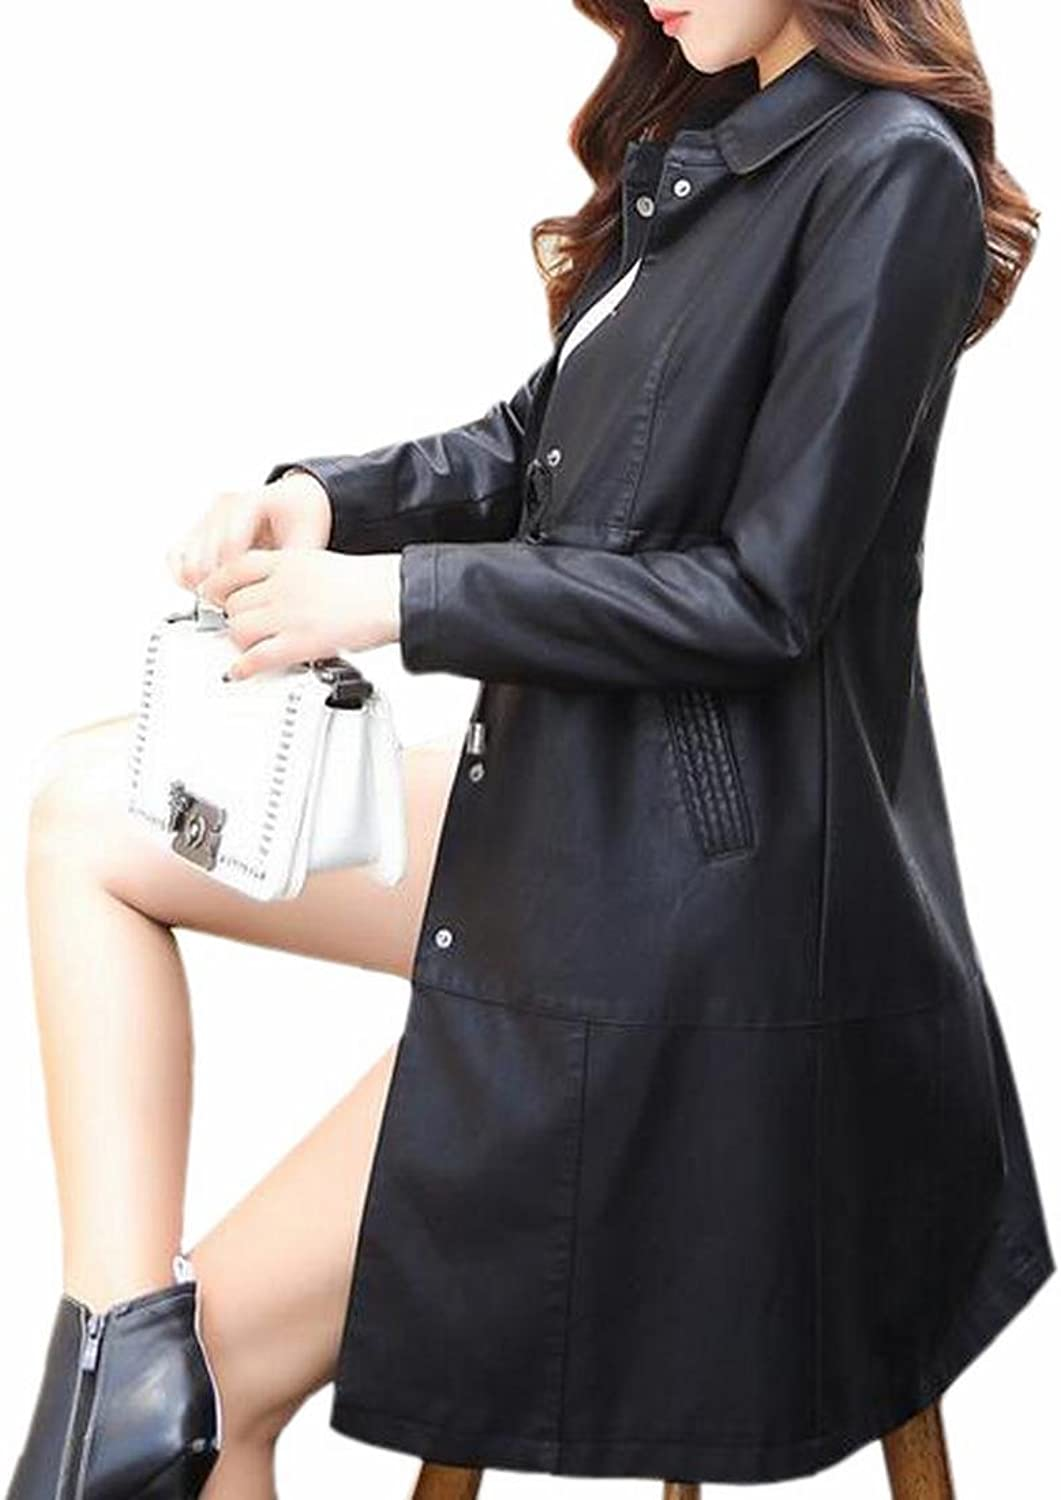 CBTLVSN Women Long Sleeve Belted Pure FauxLeather PU Trench Coat Overcoats